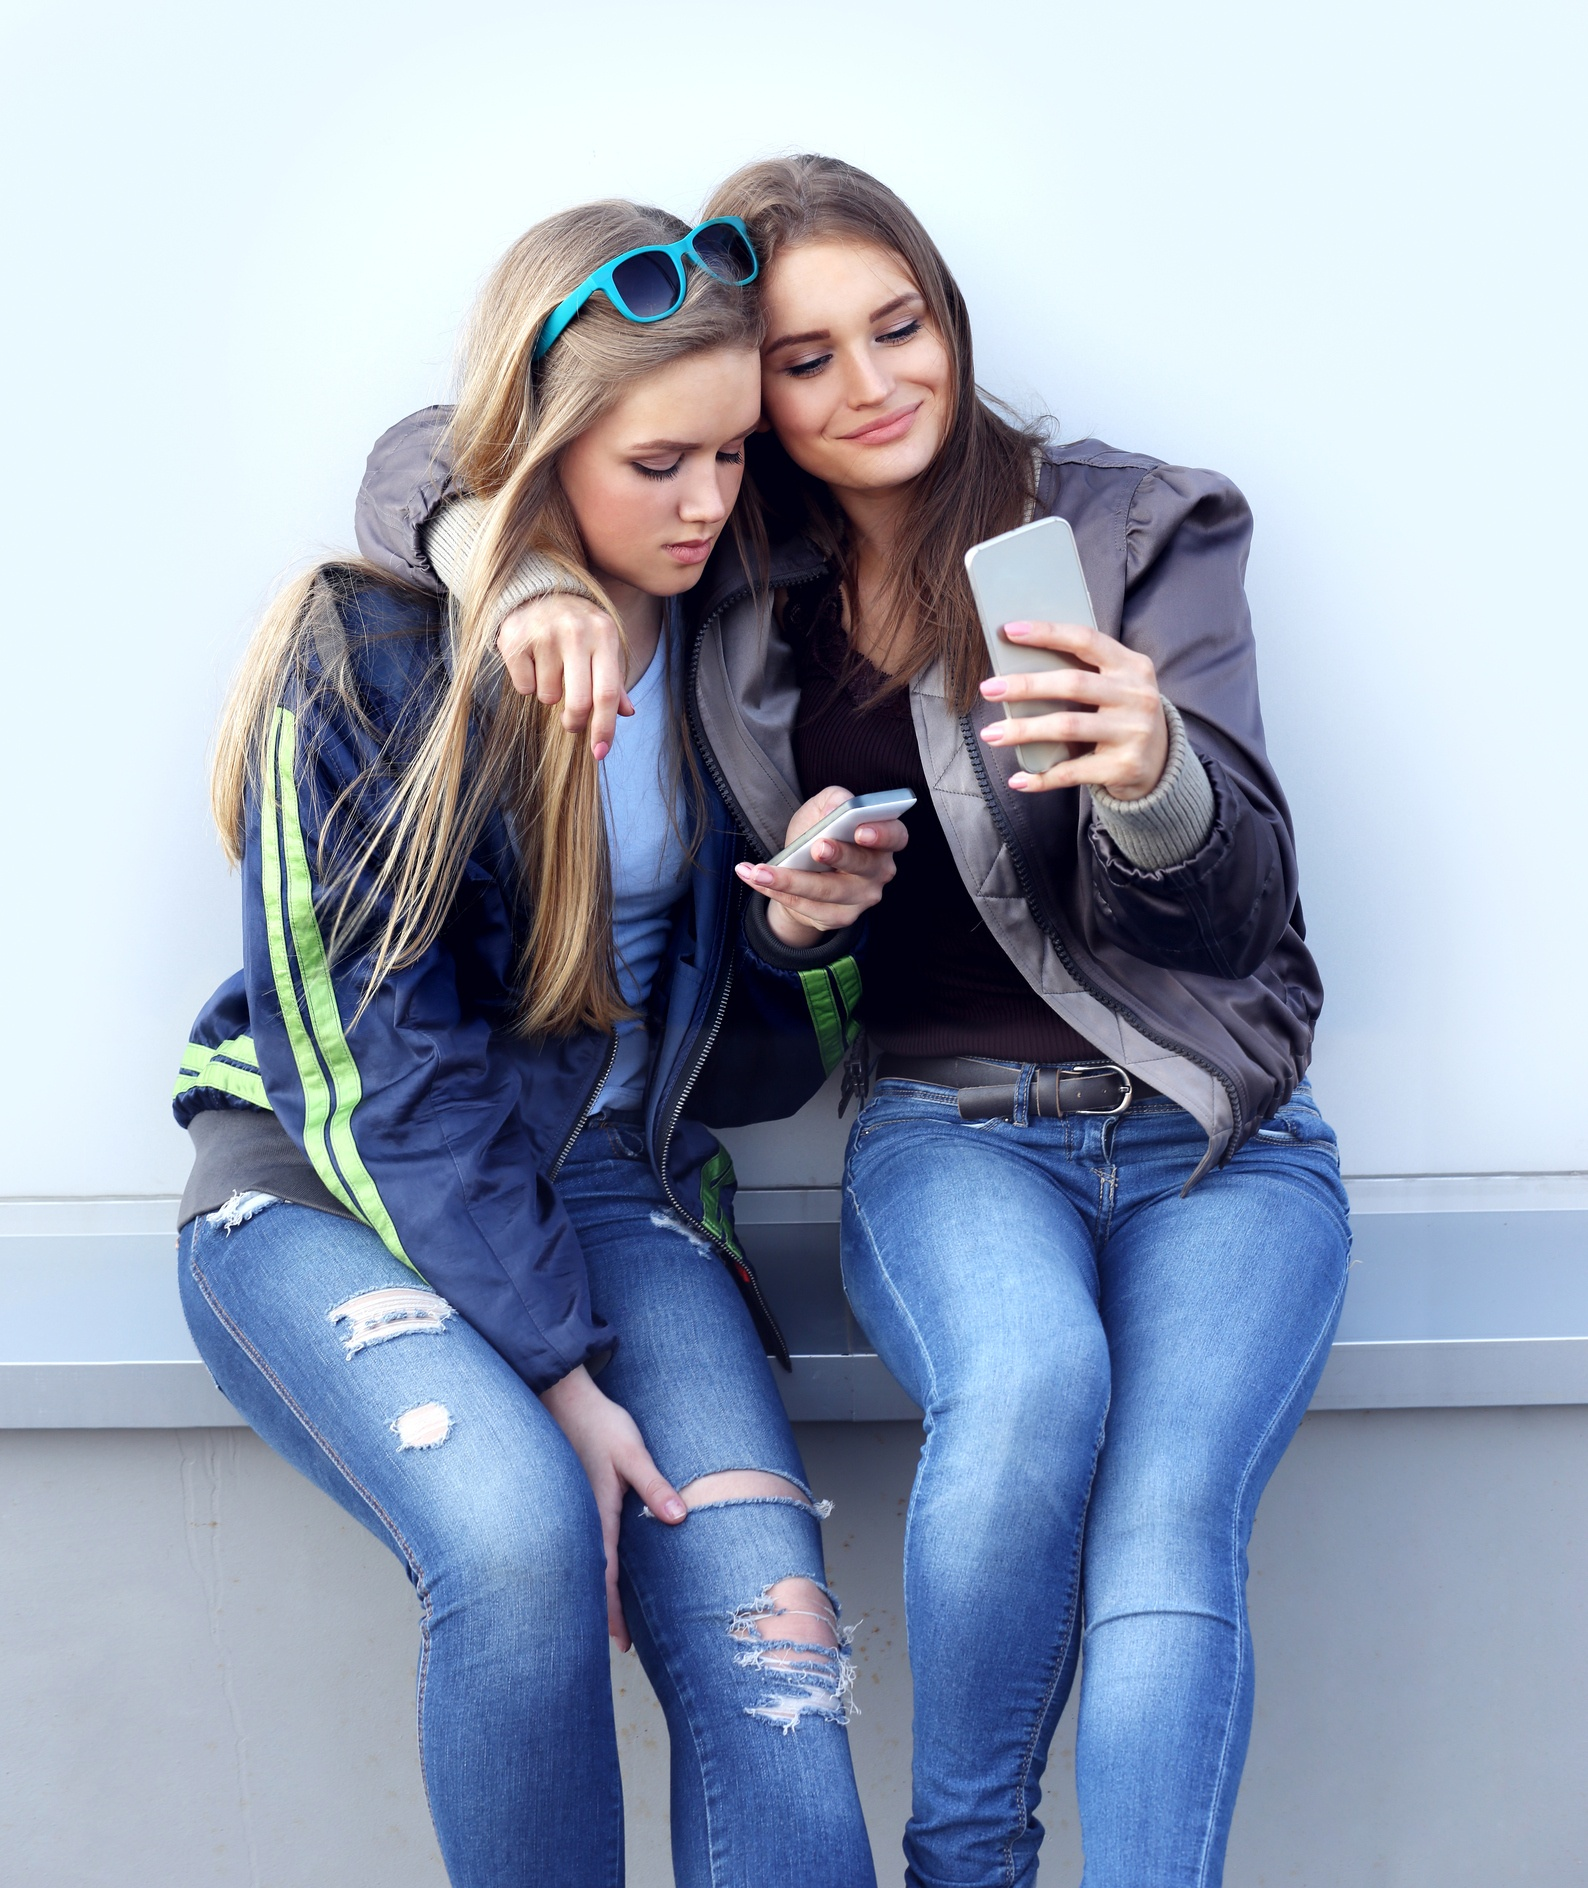 Selfie closeup of two friends